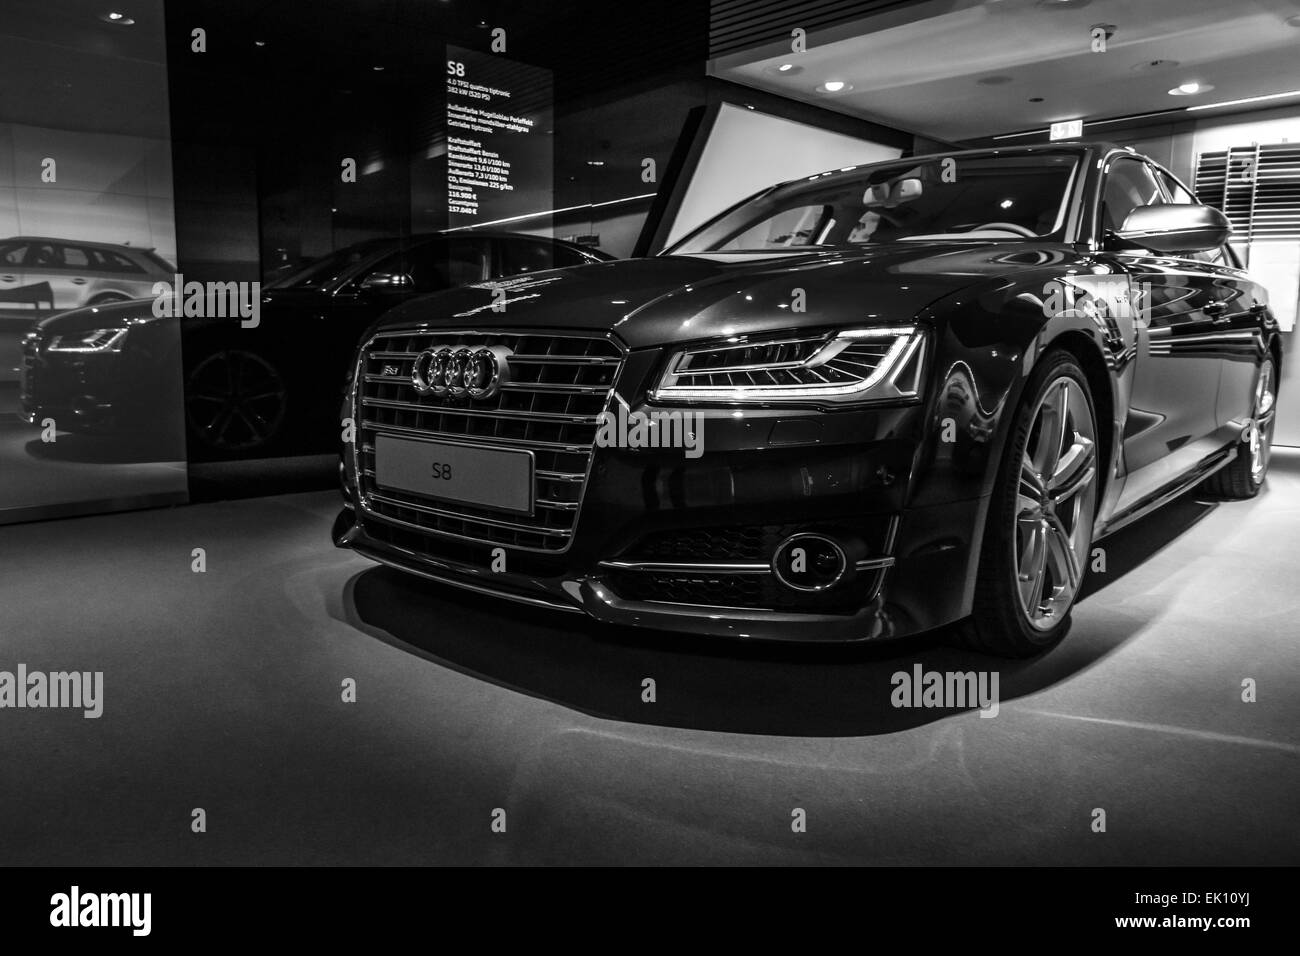 berlin march 08 2015 showroom full size luxury car audi s8 stock photo royalty free image. Black Bedroom Furniture Sets. Home Design Ideas